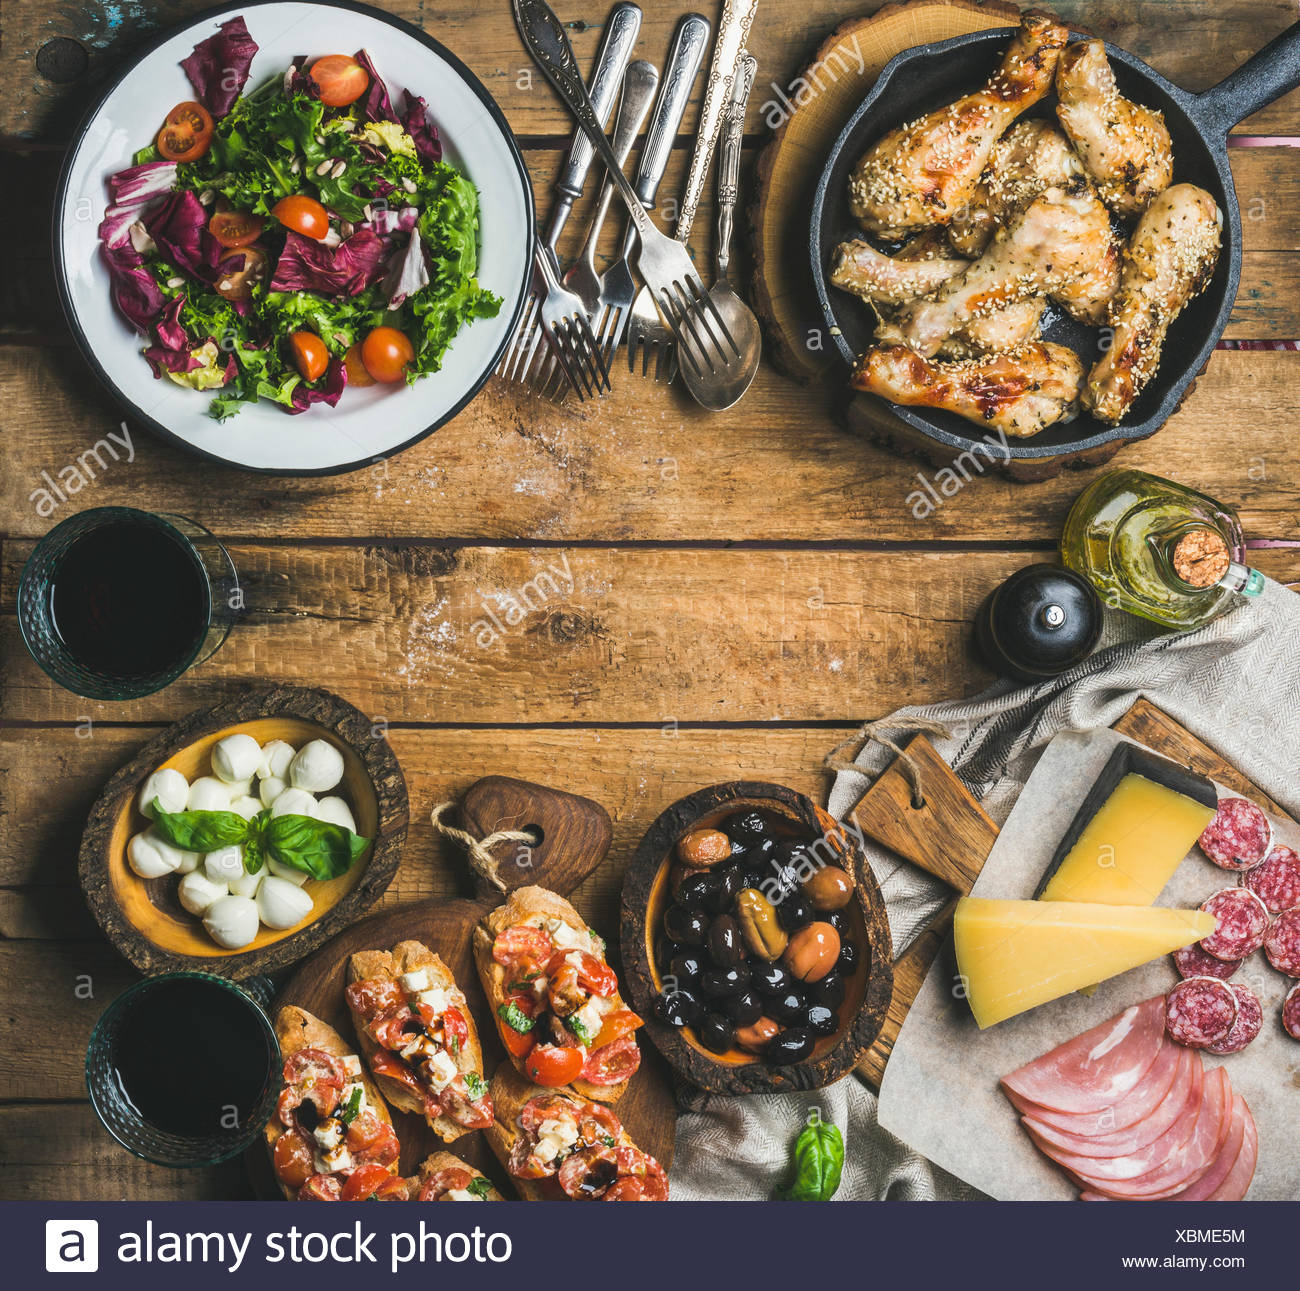 Party table arrangement. Rustic table set with vegetable salad, olives, chicken, tomato and feta cheese brushettas or sandwiches, various snacks and r - Stock Image